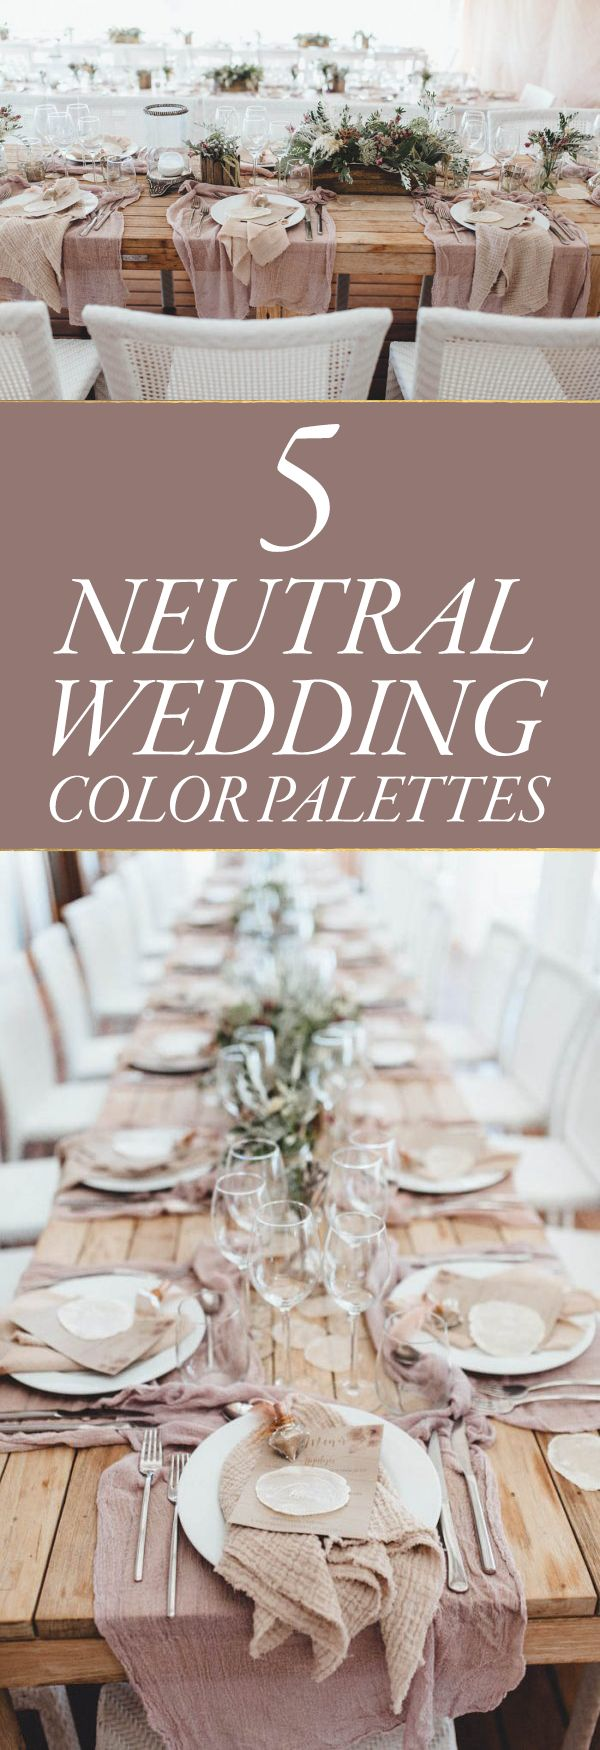 When considering wedding trends for 2017, we keep coming back to striking neutral wedding color palettes inspired by earthy tones and understated elegance.